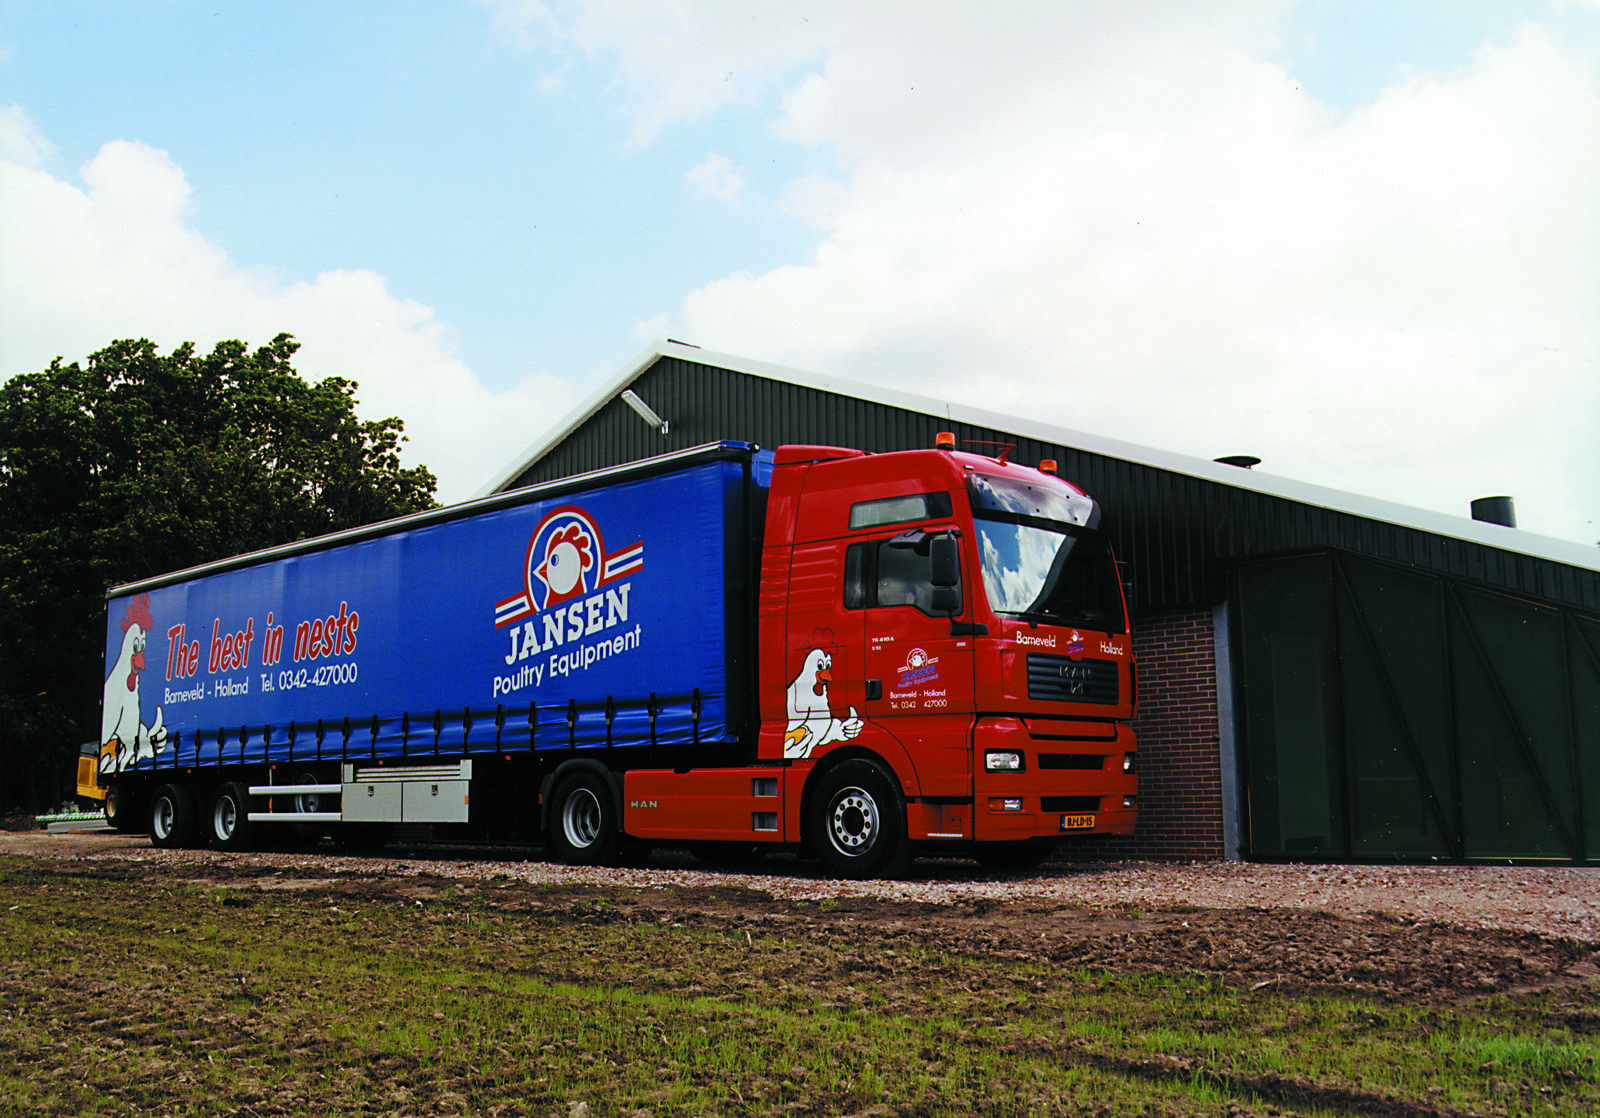 Jansen Poultry Equipment - Other